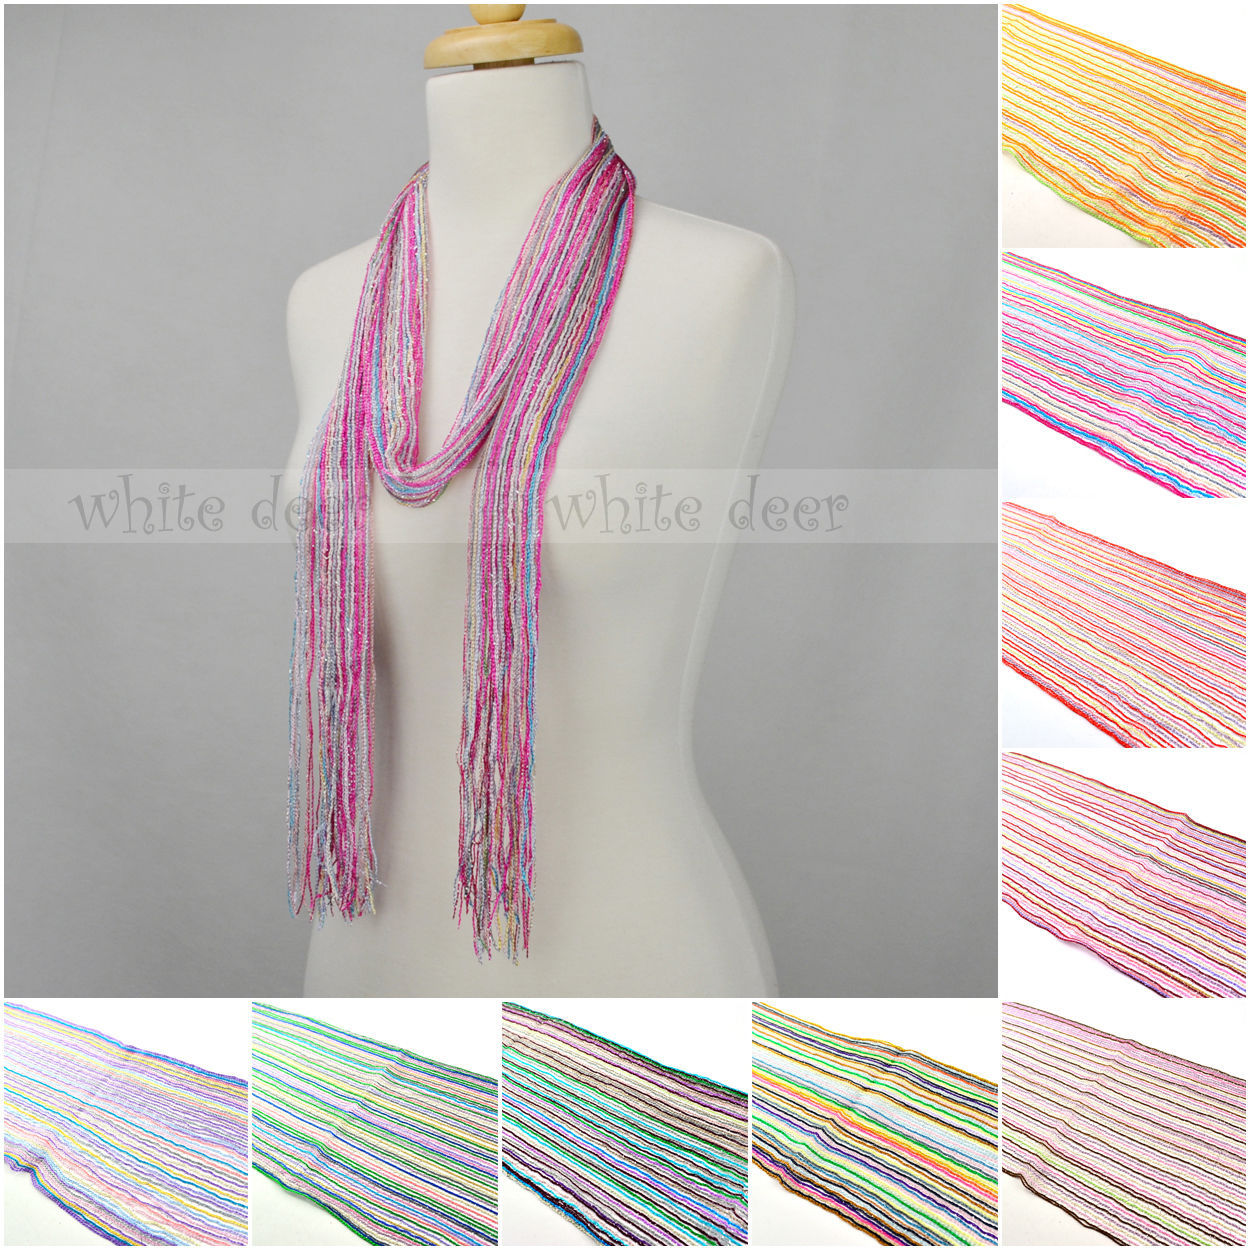 Primary image for 12 PCs Wholesale Women Crochet Bling Shine Thread Multi Color Knitted Scarf Belt